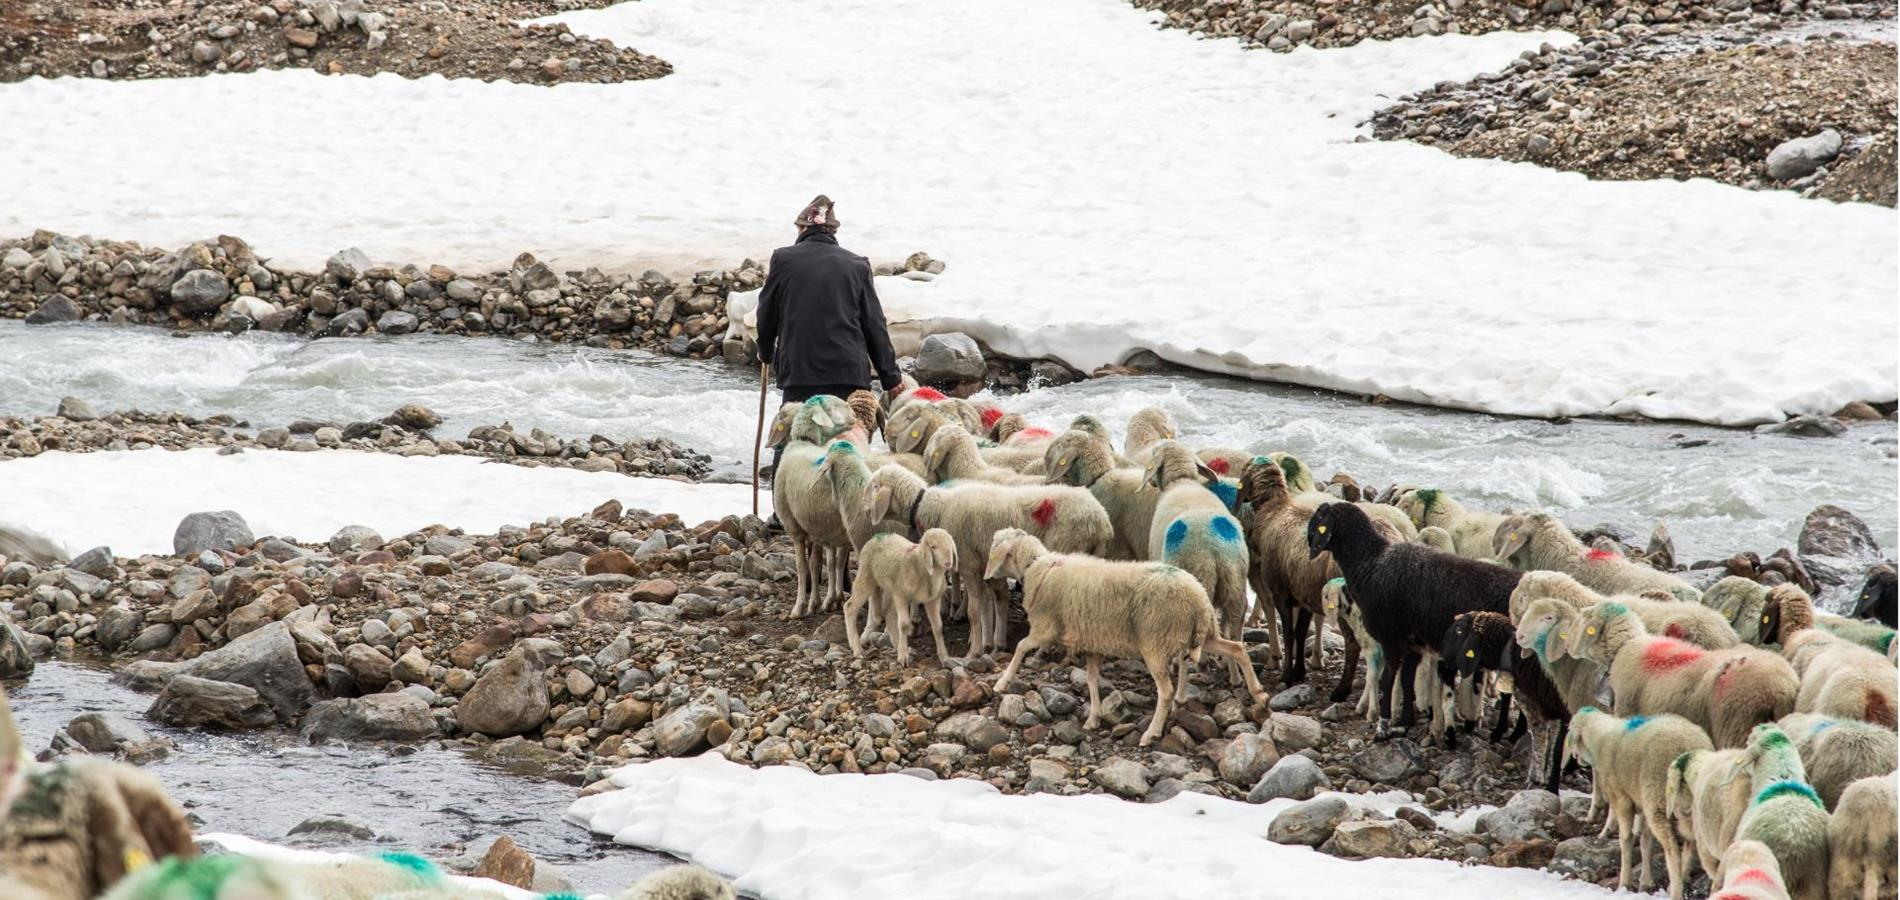 The transhumance of the sheep